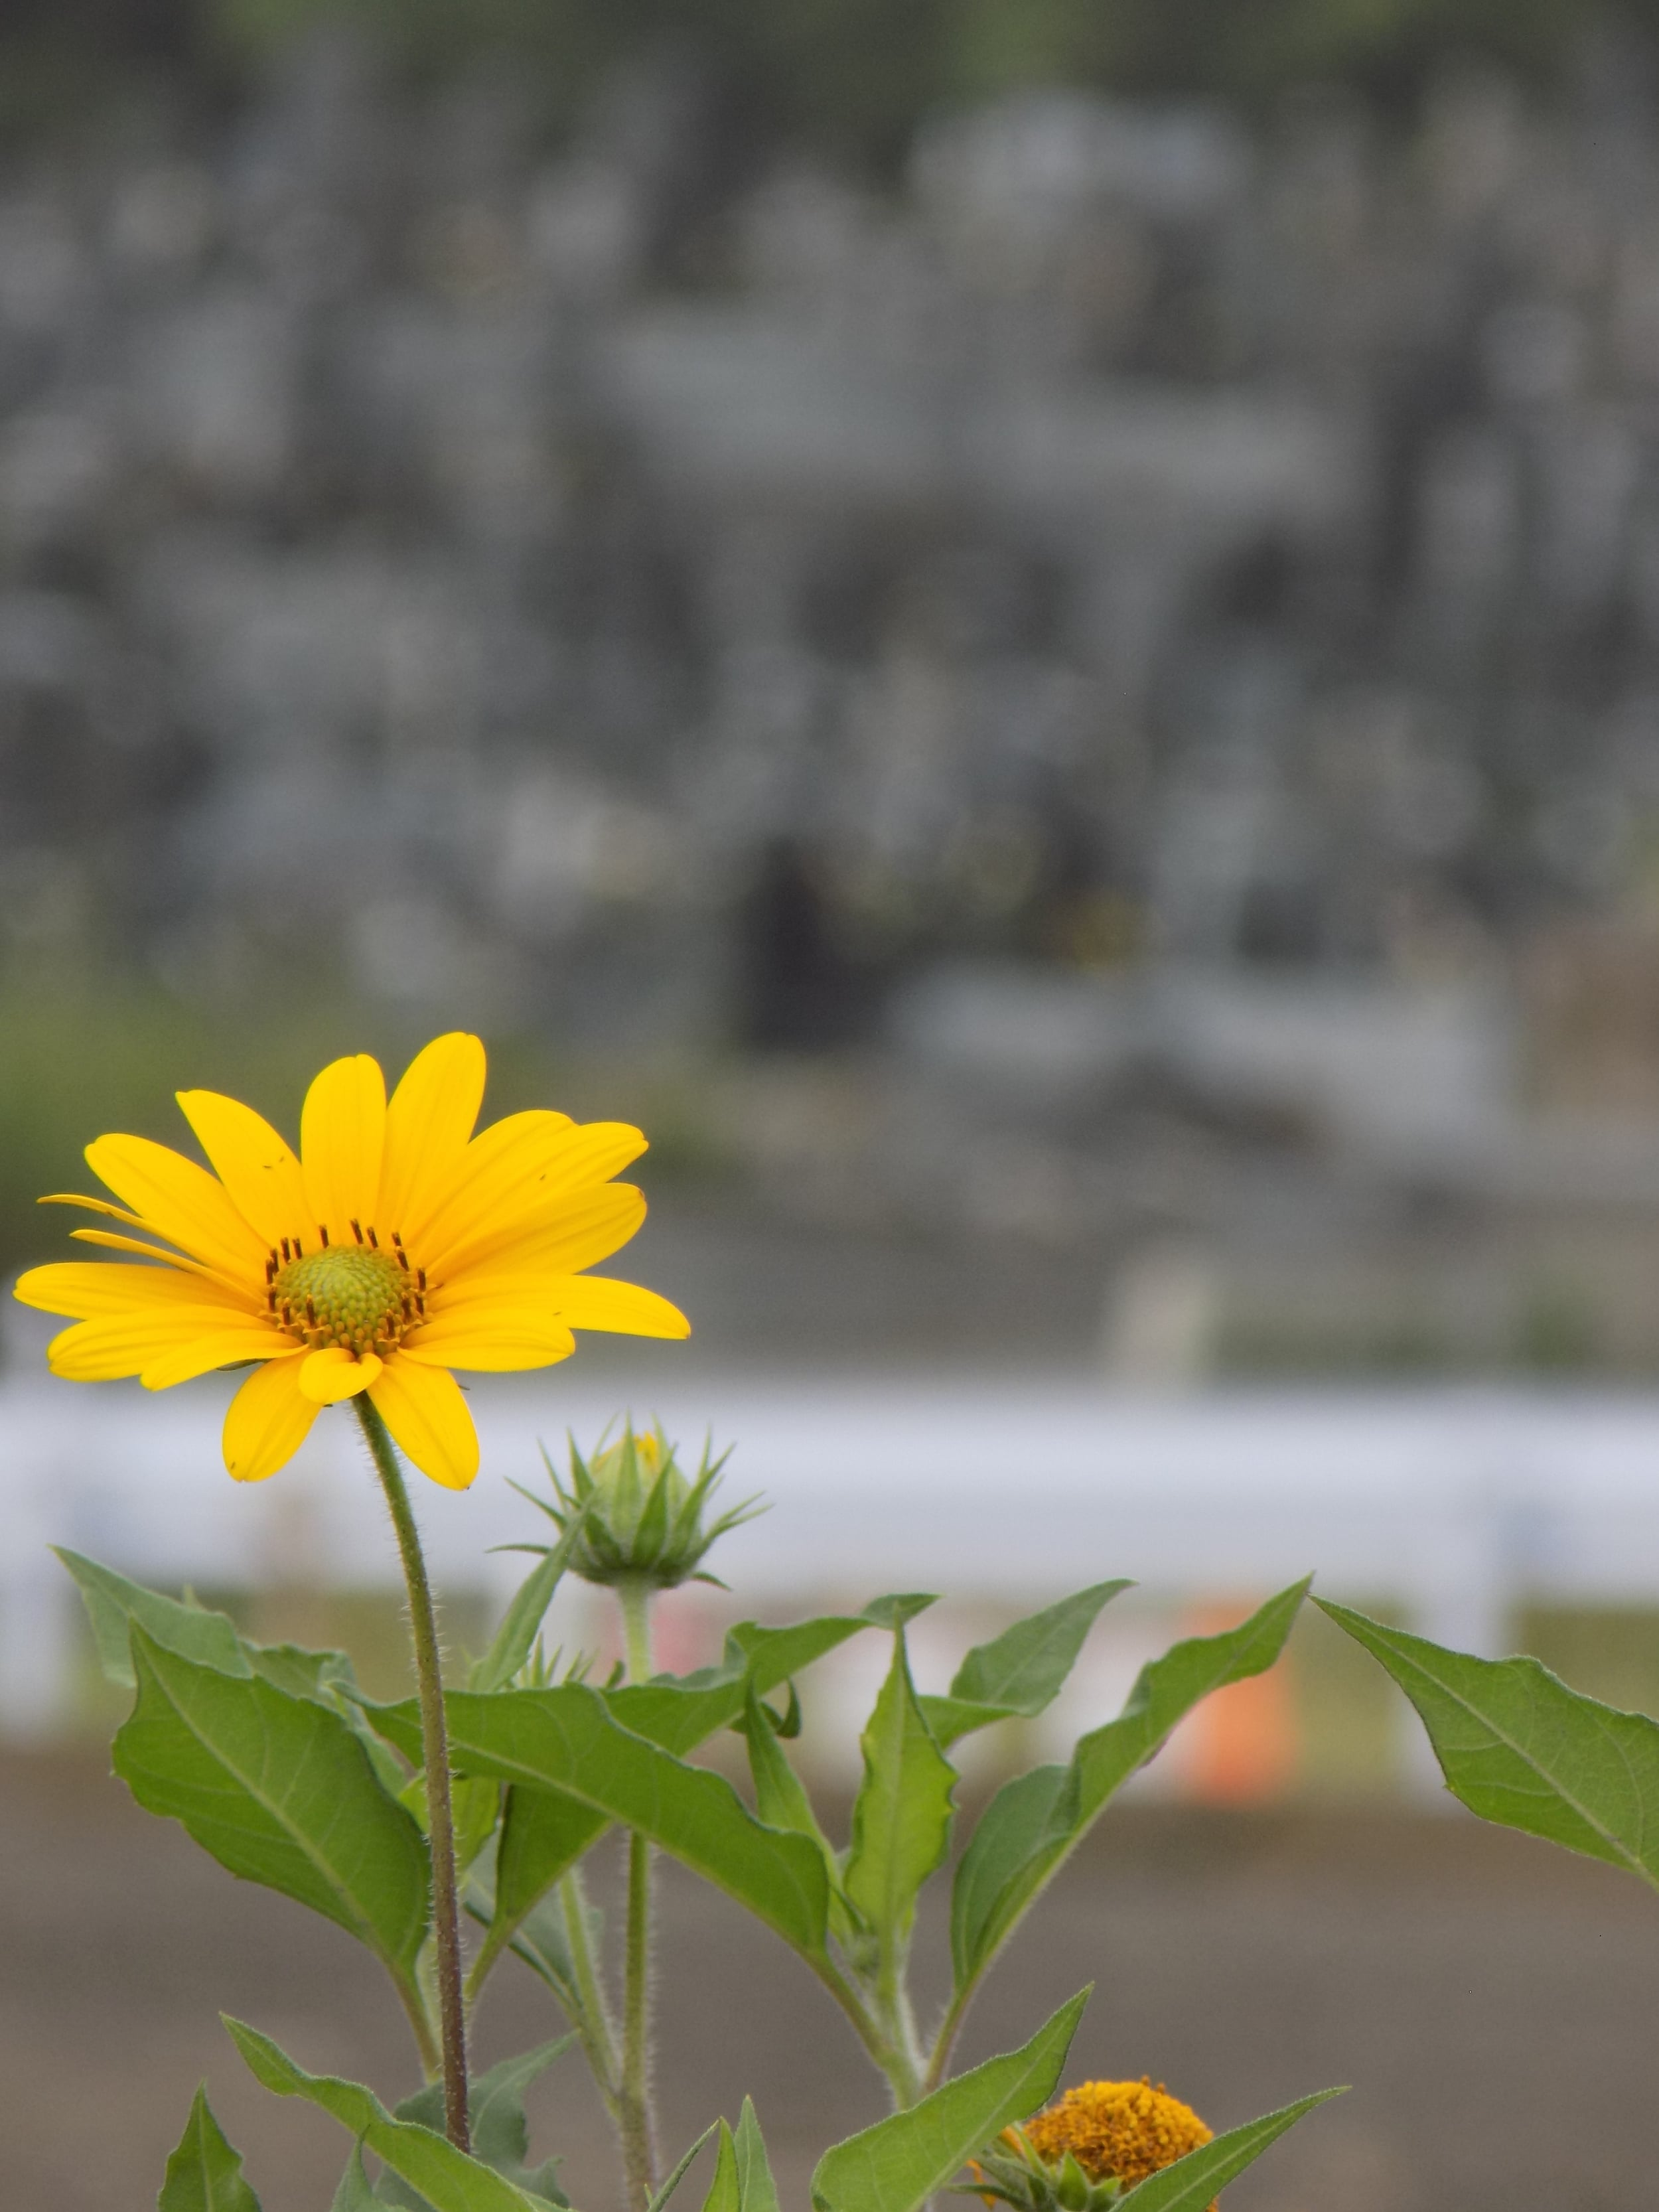 This was a single yellow daisy growing solo on a mound of dirt; in the background, the grave site that is nestled next to the elementary school.